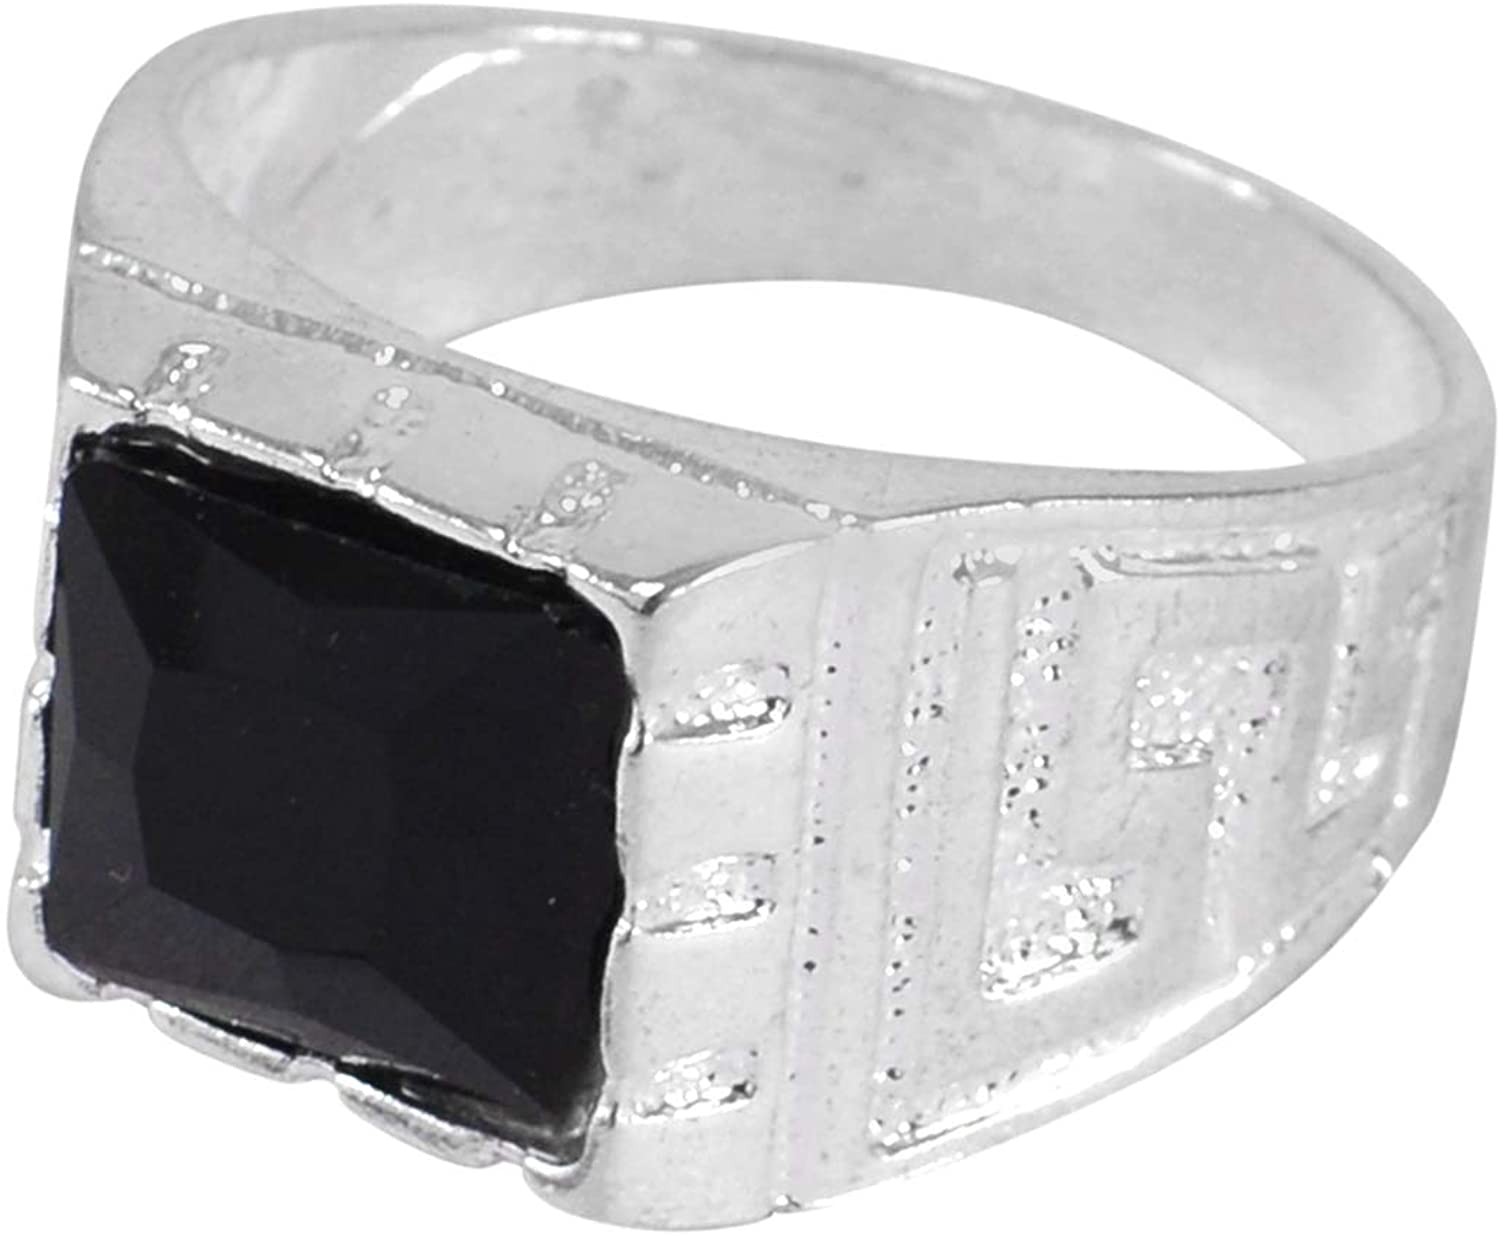 Jaipur Rajasthan India Square Shape 11x11mm, Black Onyx, 925 Sterling Silver Plated, Simple Ring Handmade Jewelry Manufacturer